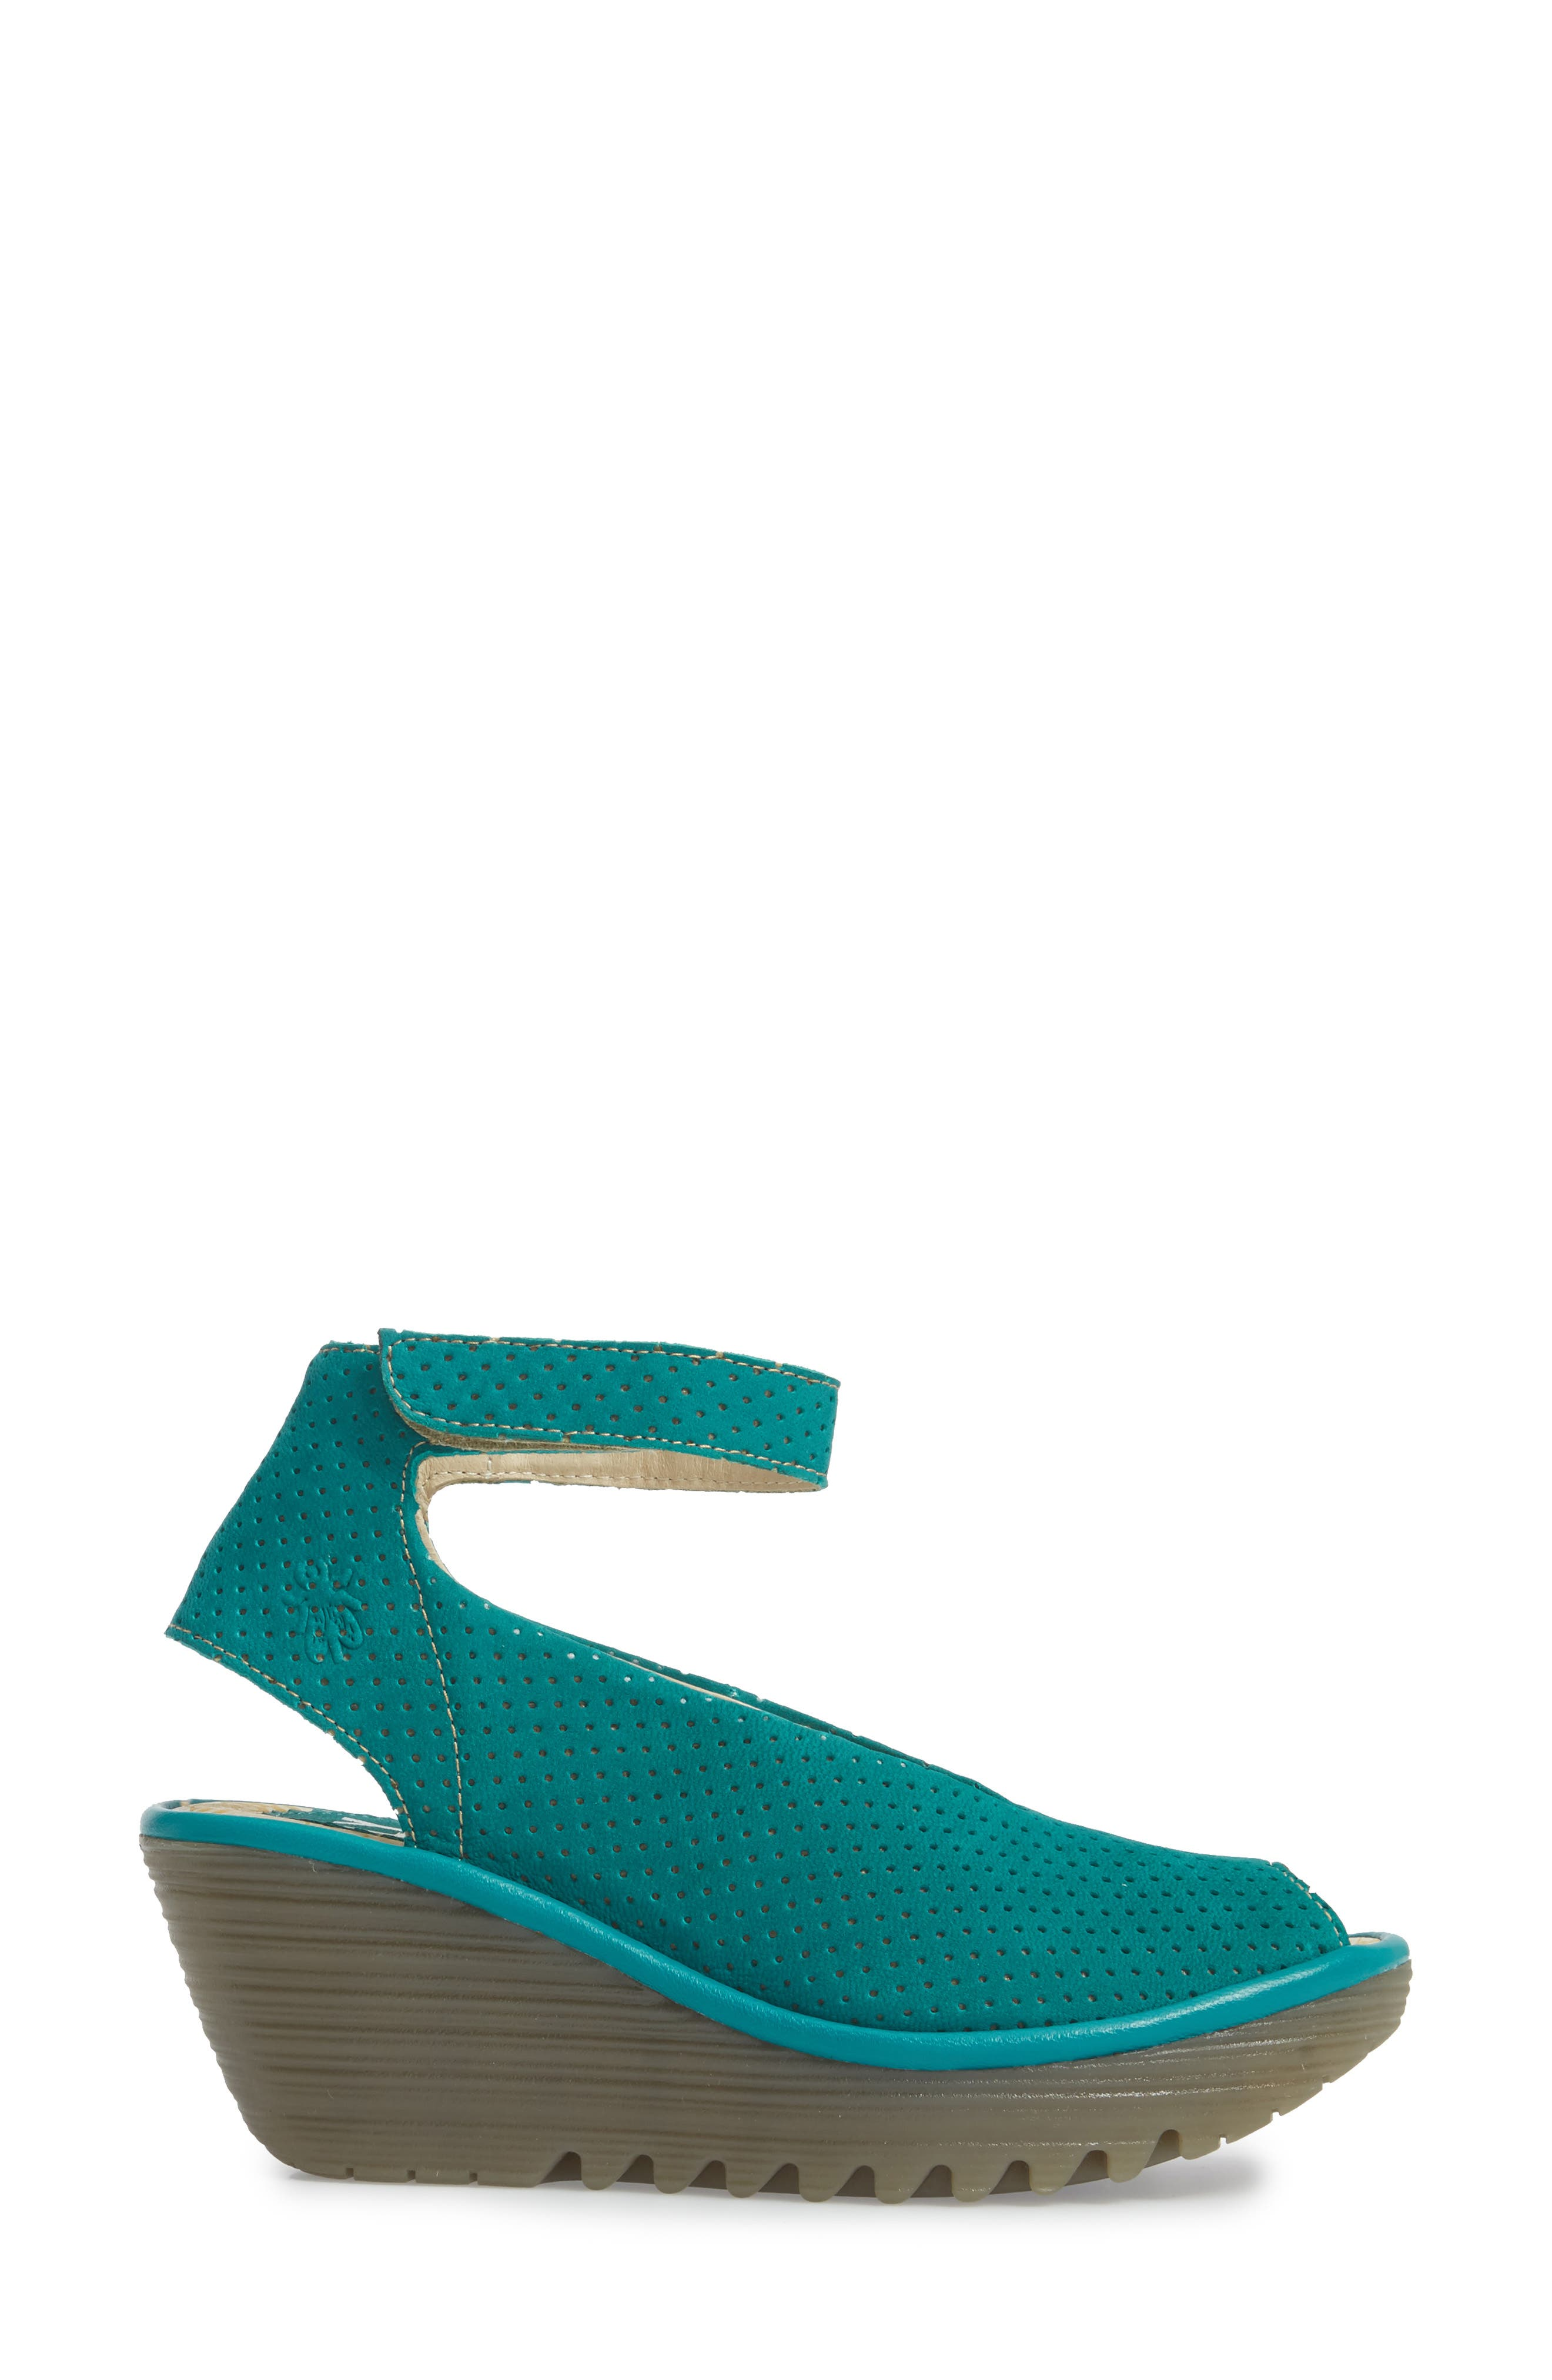 'Yala' Perforated Leather Sandal,                             Alternate thumbnail 3, color,                             Green Leather